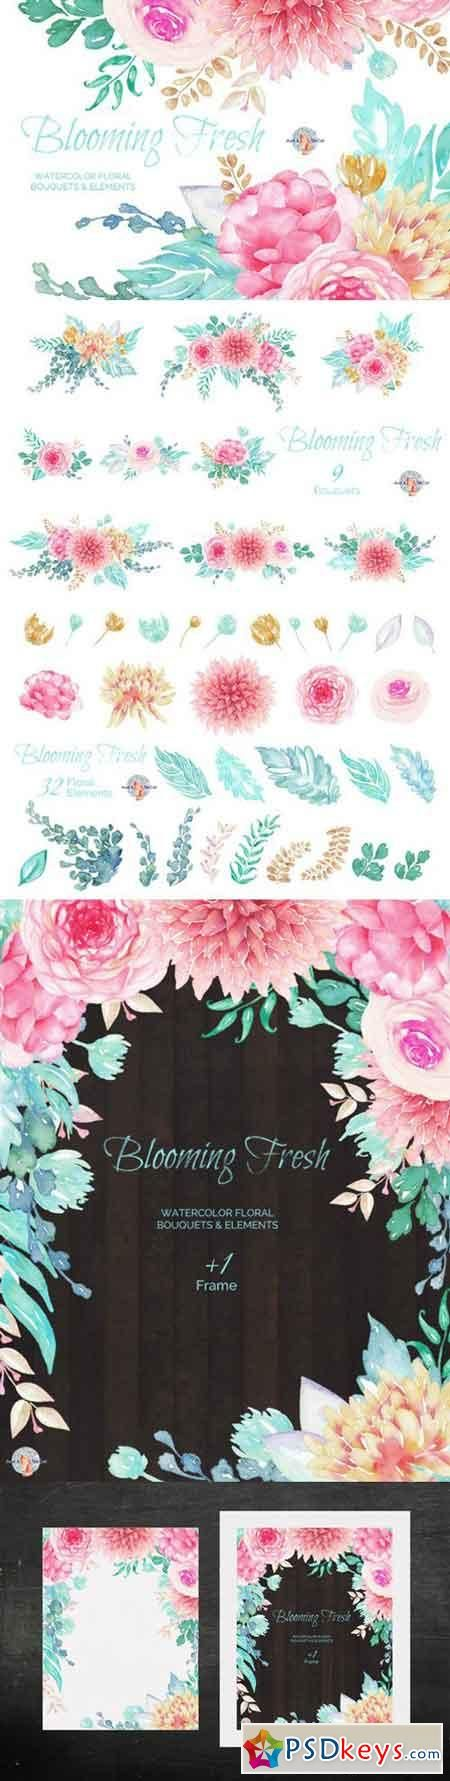 Blooming Fresh Watercolor Clipart 450143